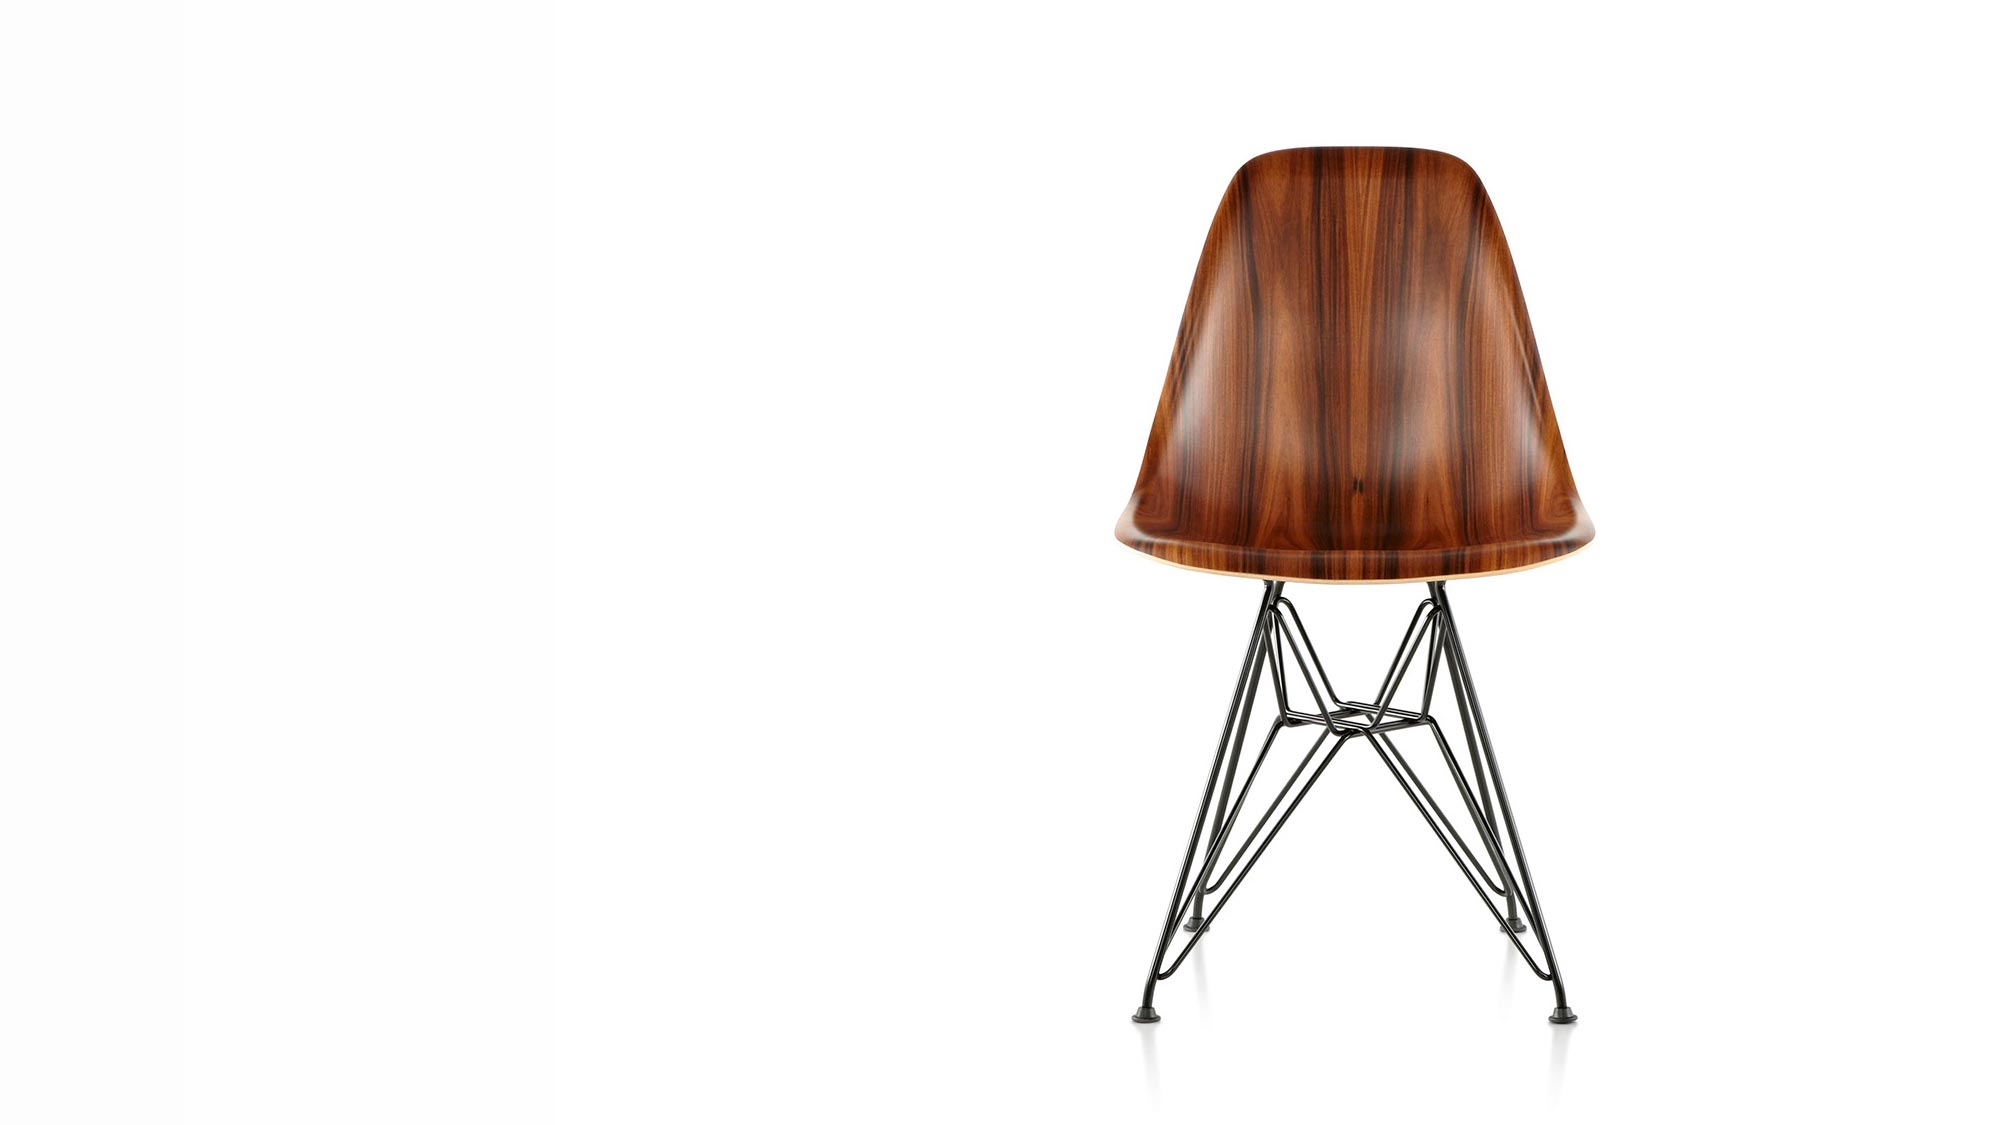 eames-molded-wood-chair